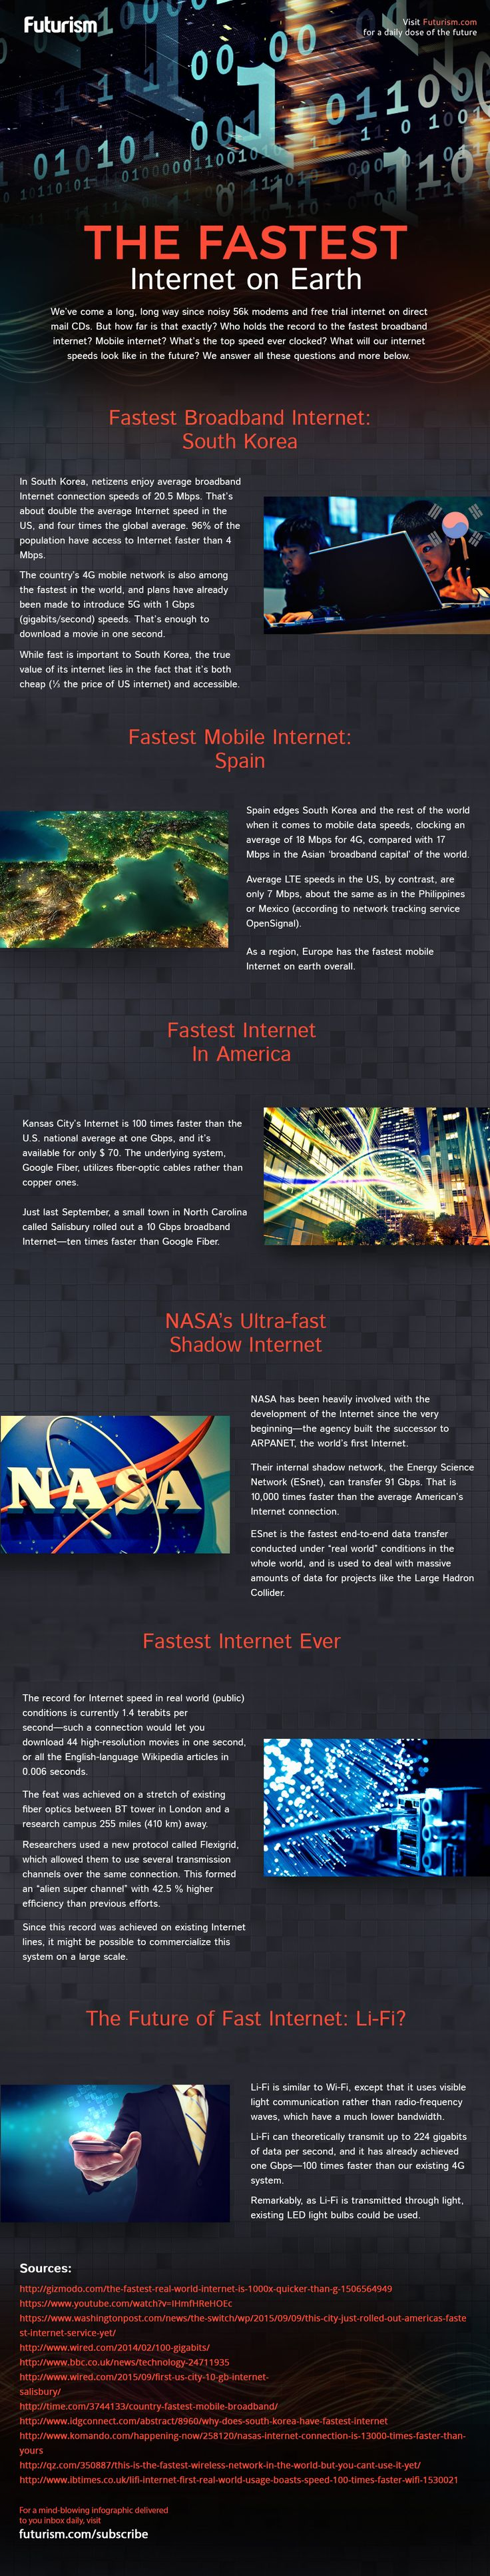 fastest internet infographic